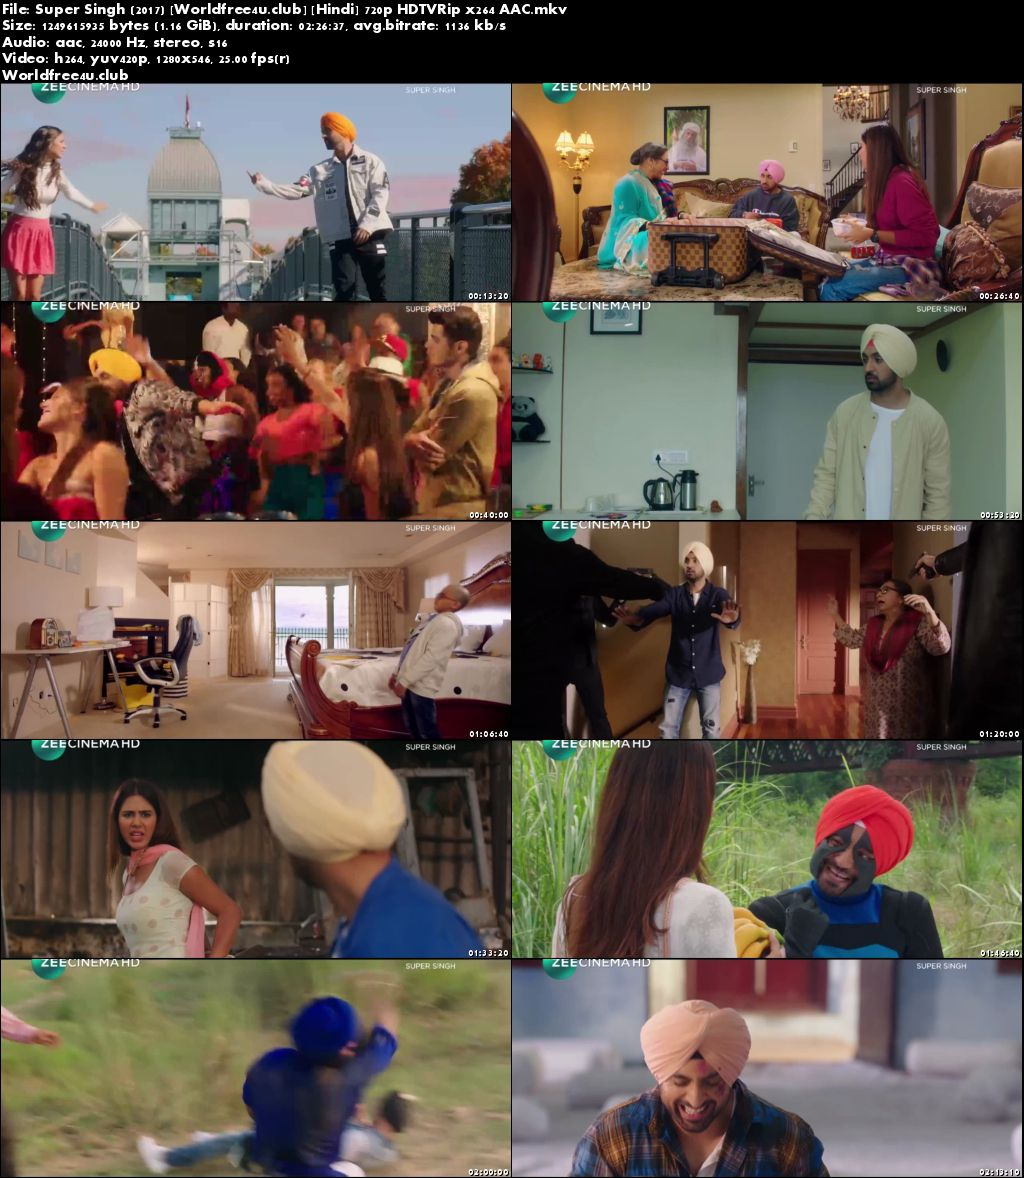 Super Singh 2017 world4free.ind.in Full HDRip 720p Hindi Movie Download